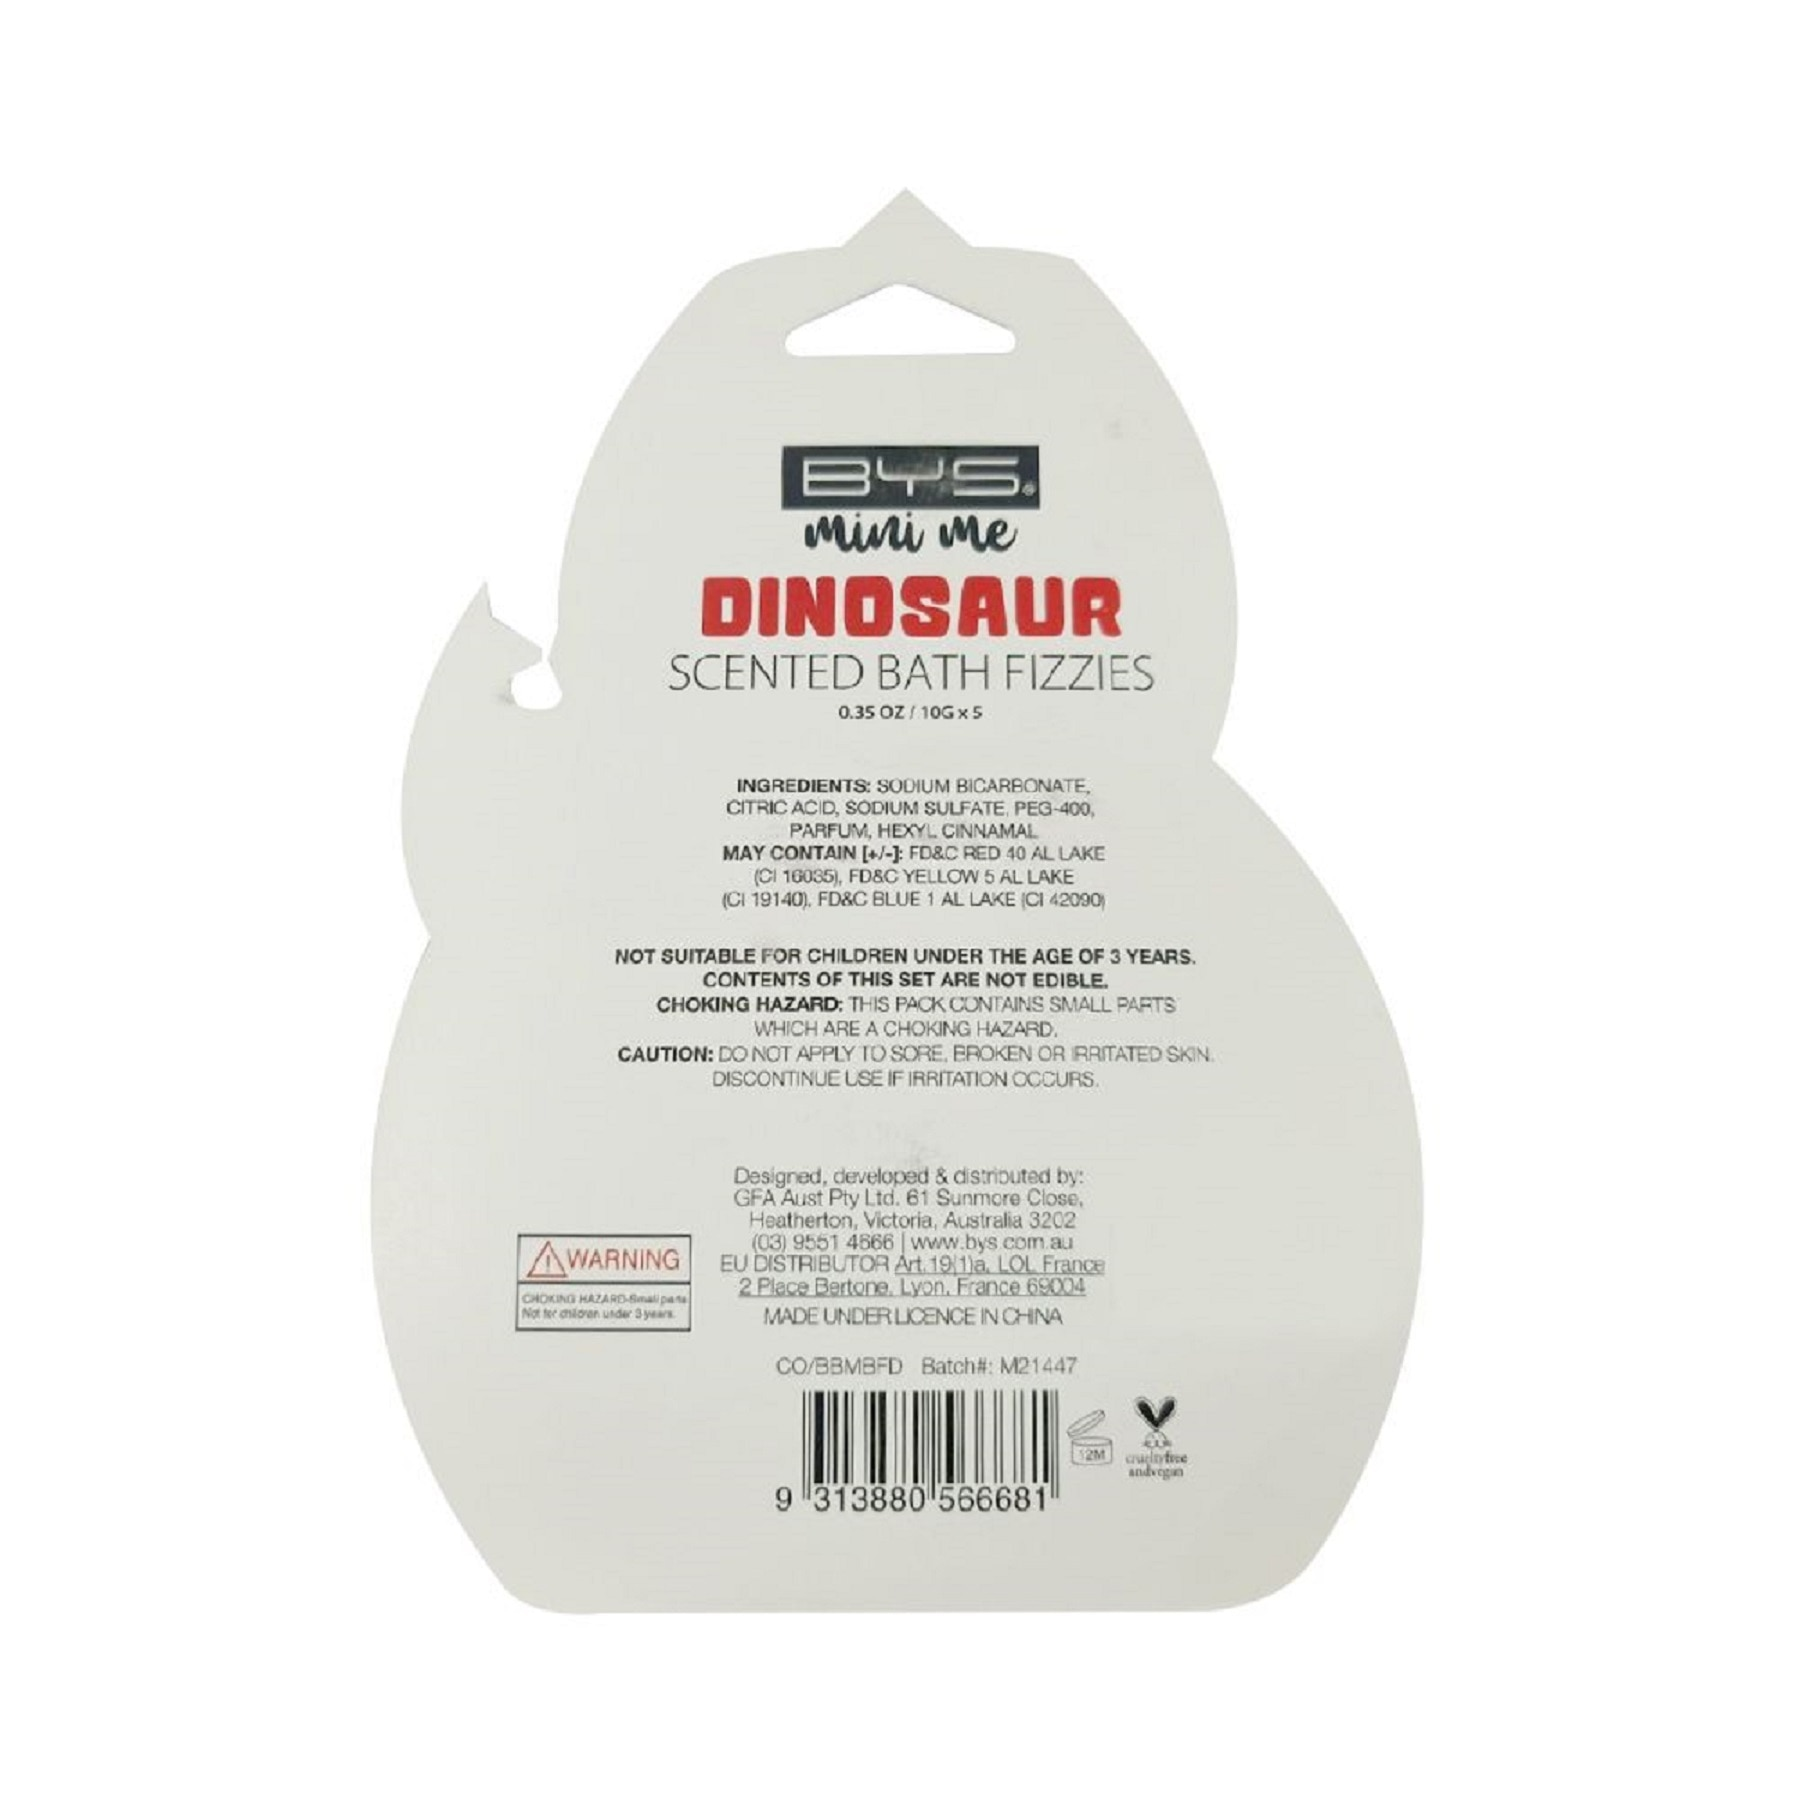 BYSMini Me Scented Bath Fizzies Dinosaur 10g,Nail Polish and AccessoriesWATSONS EMP. DISC.